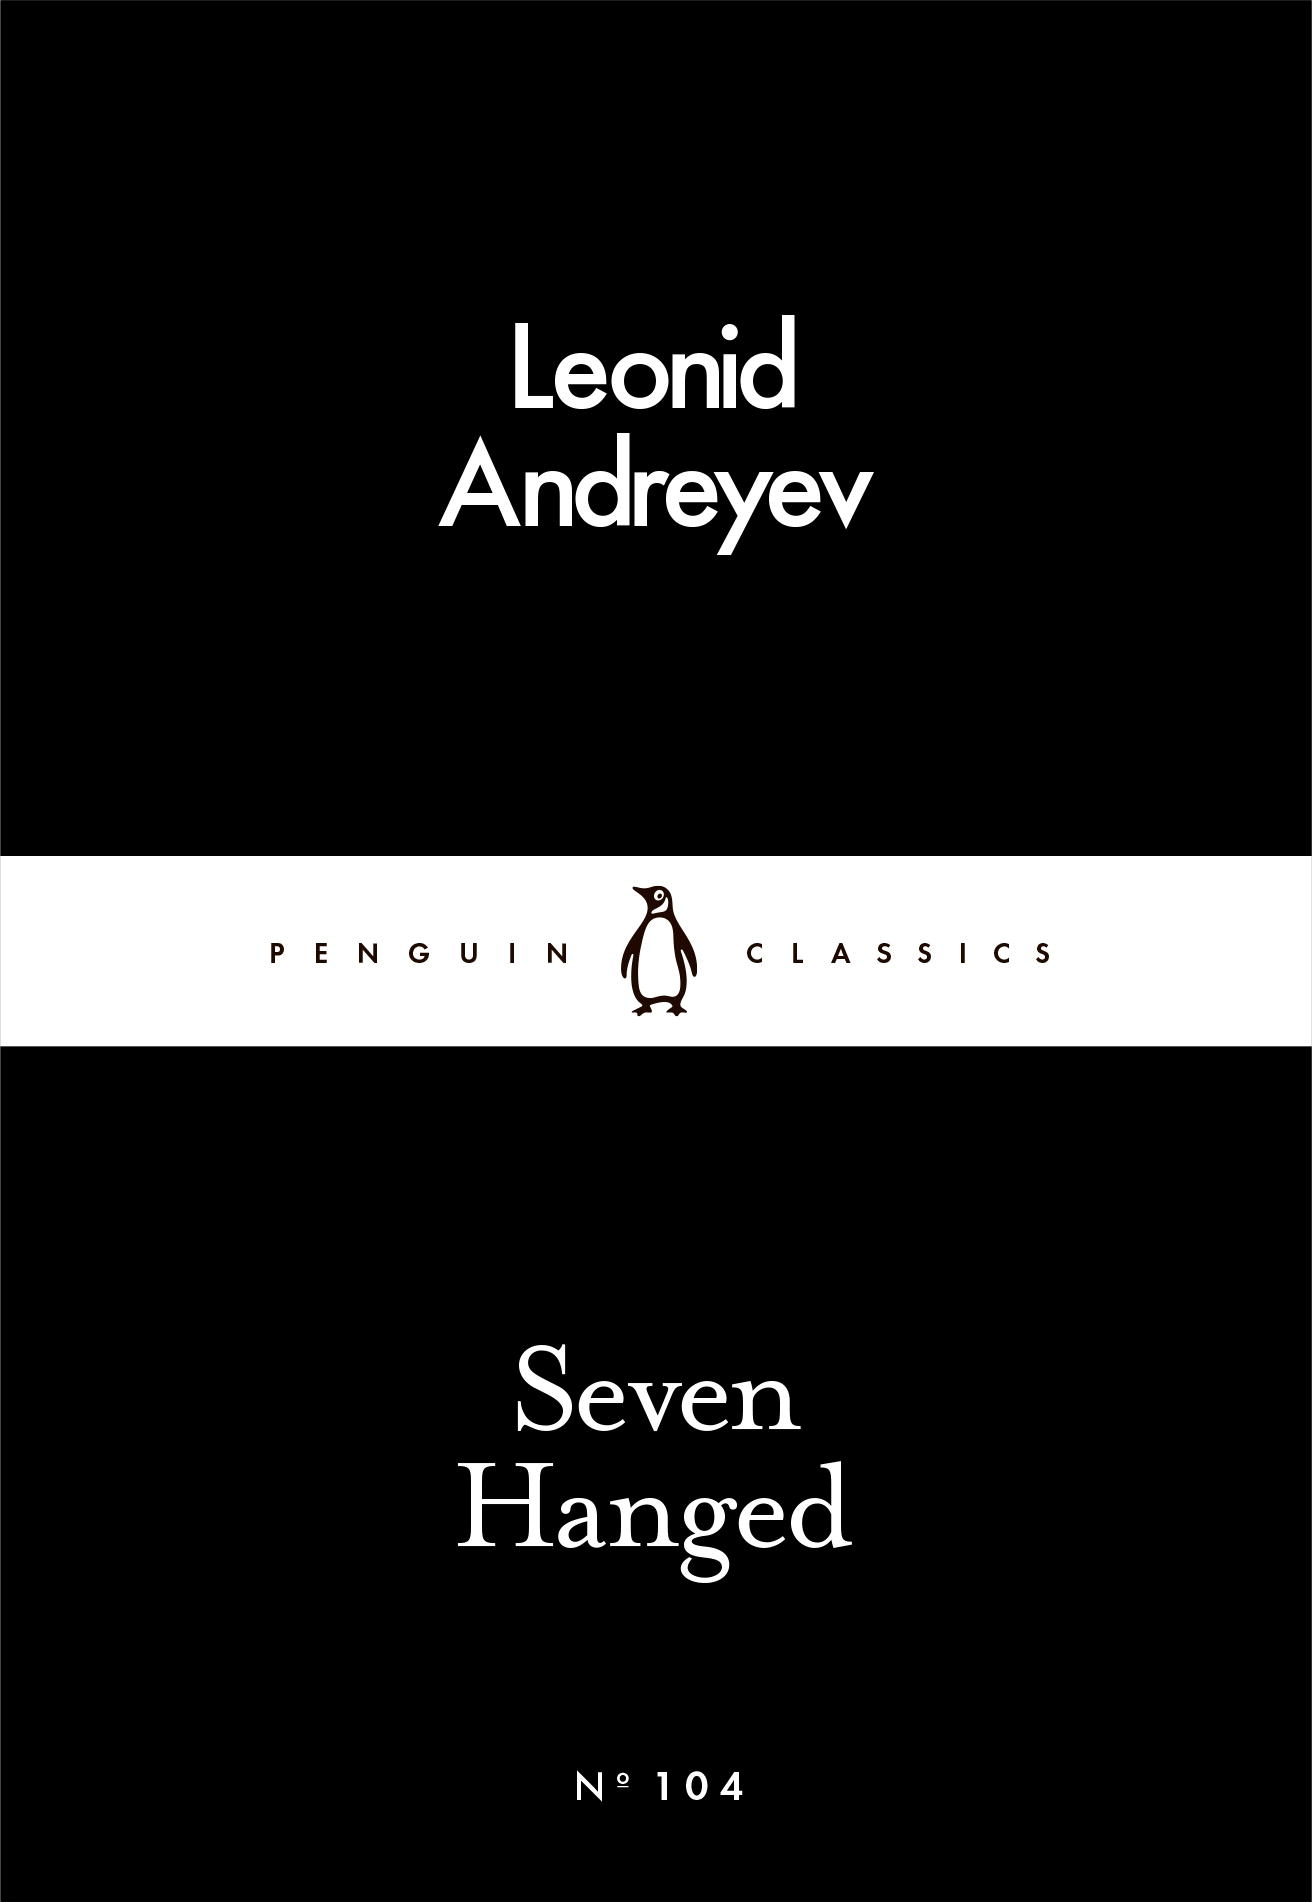 Seven Hanged by Leonid Andreyev, ISBN: 9780241252130